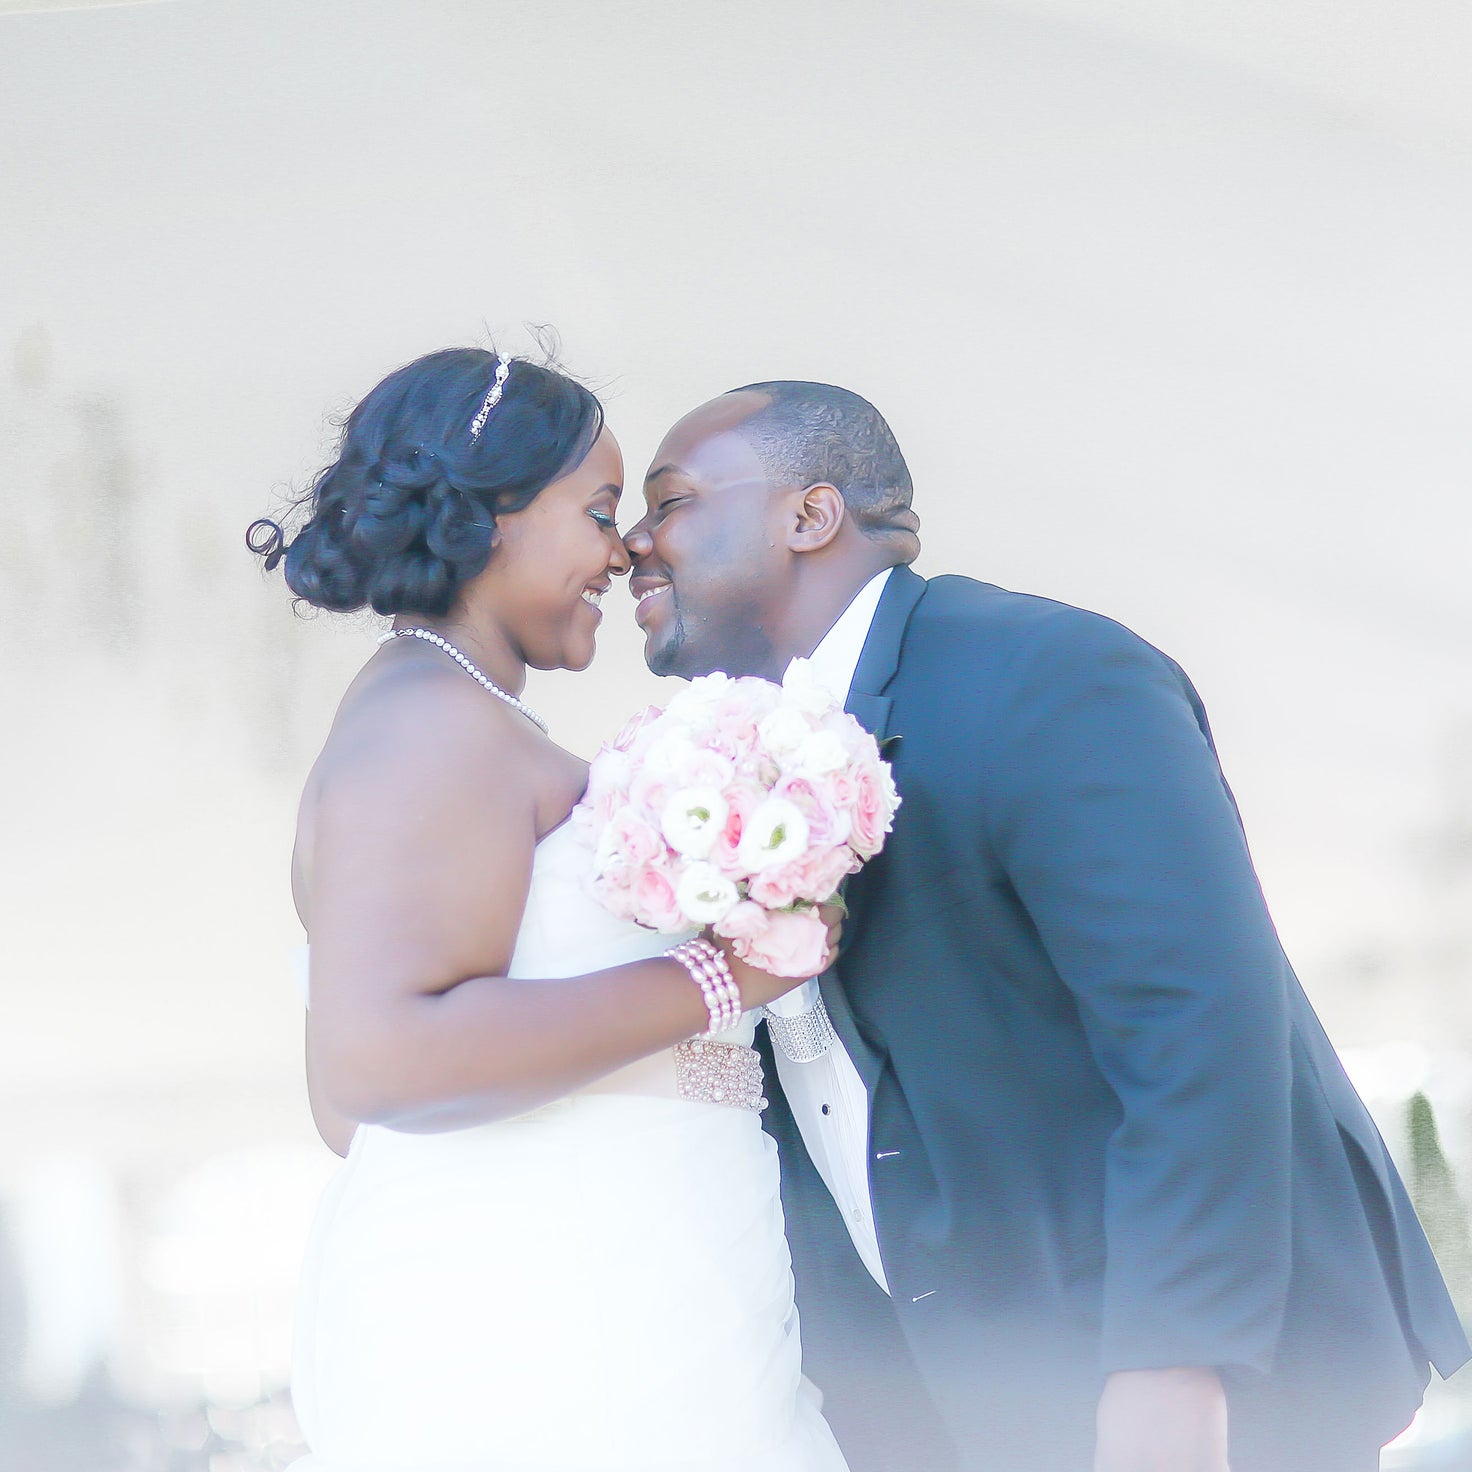 Bridal Bliss: Blaise and Nicole's Wedding Has Happily Ever After Written All Over It